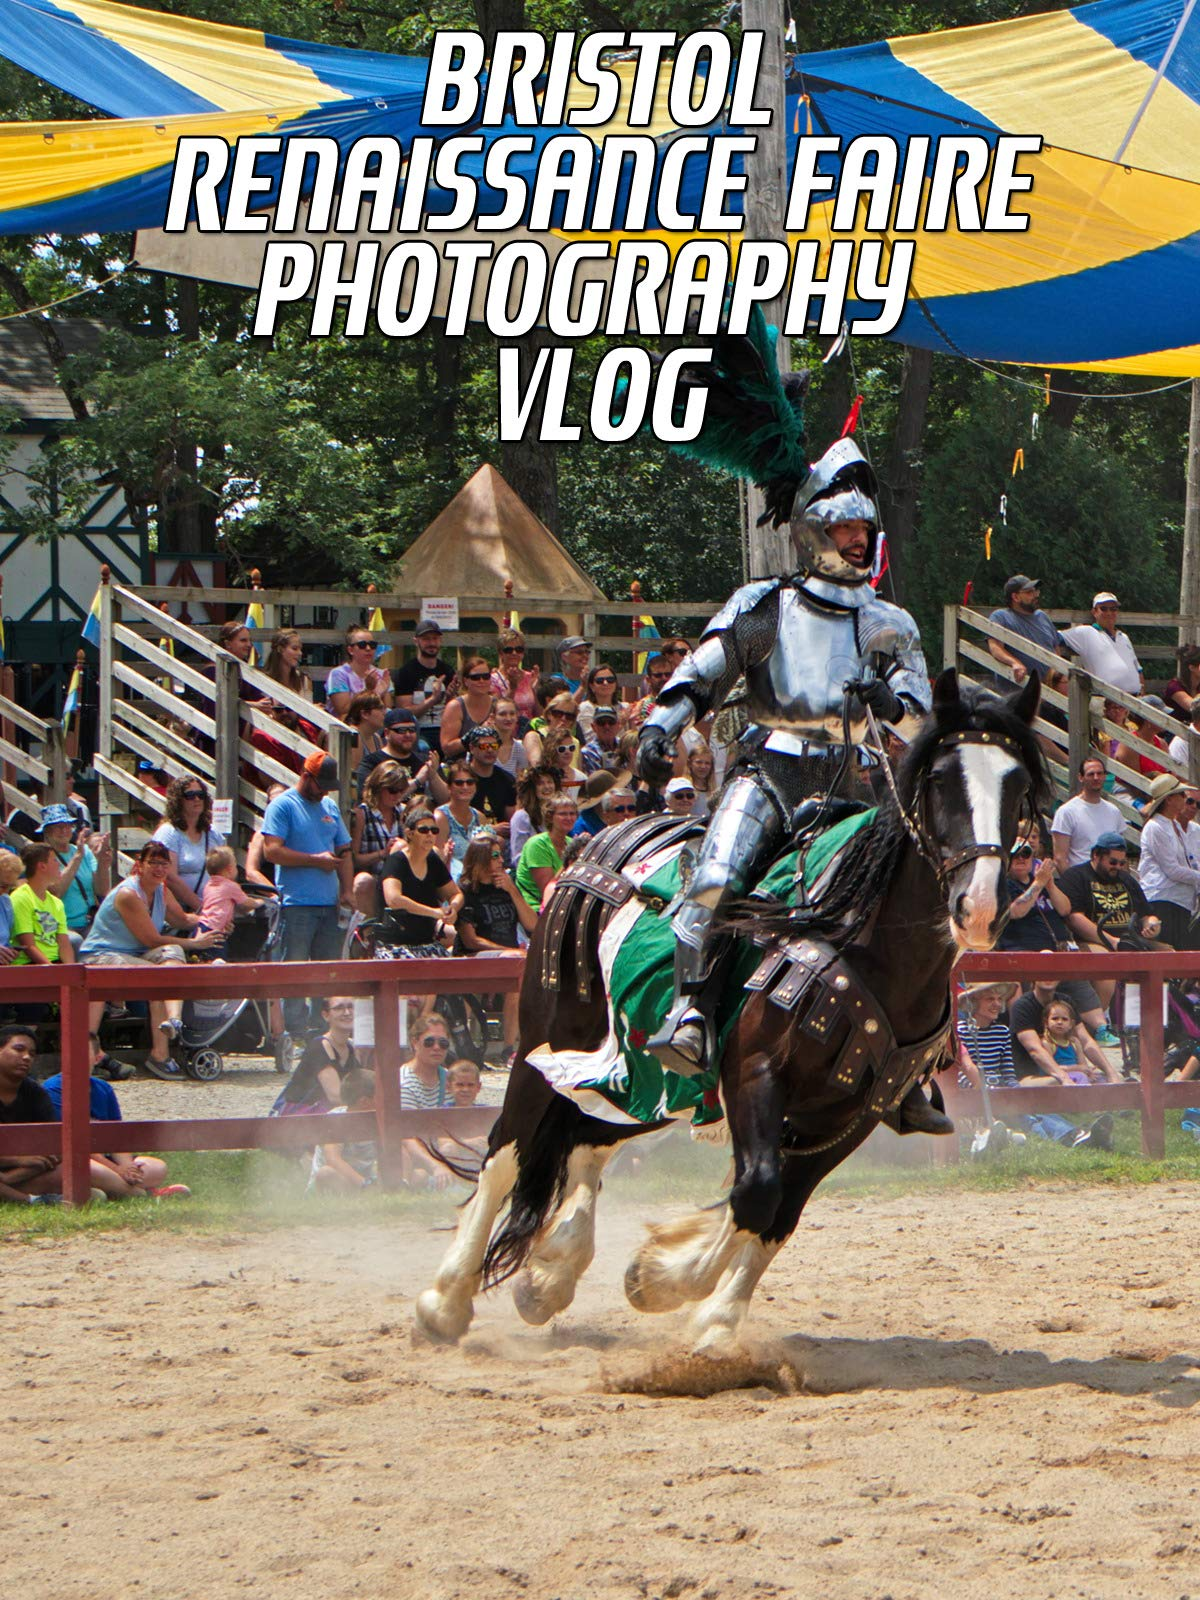 Bristol Renaissance Faire Photo Vlog